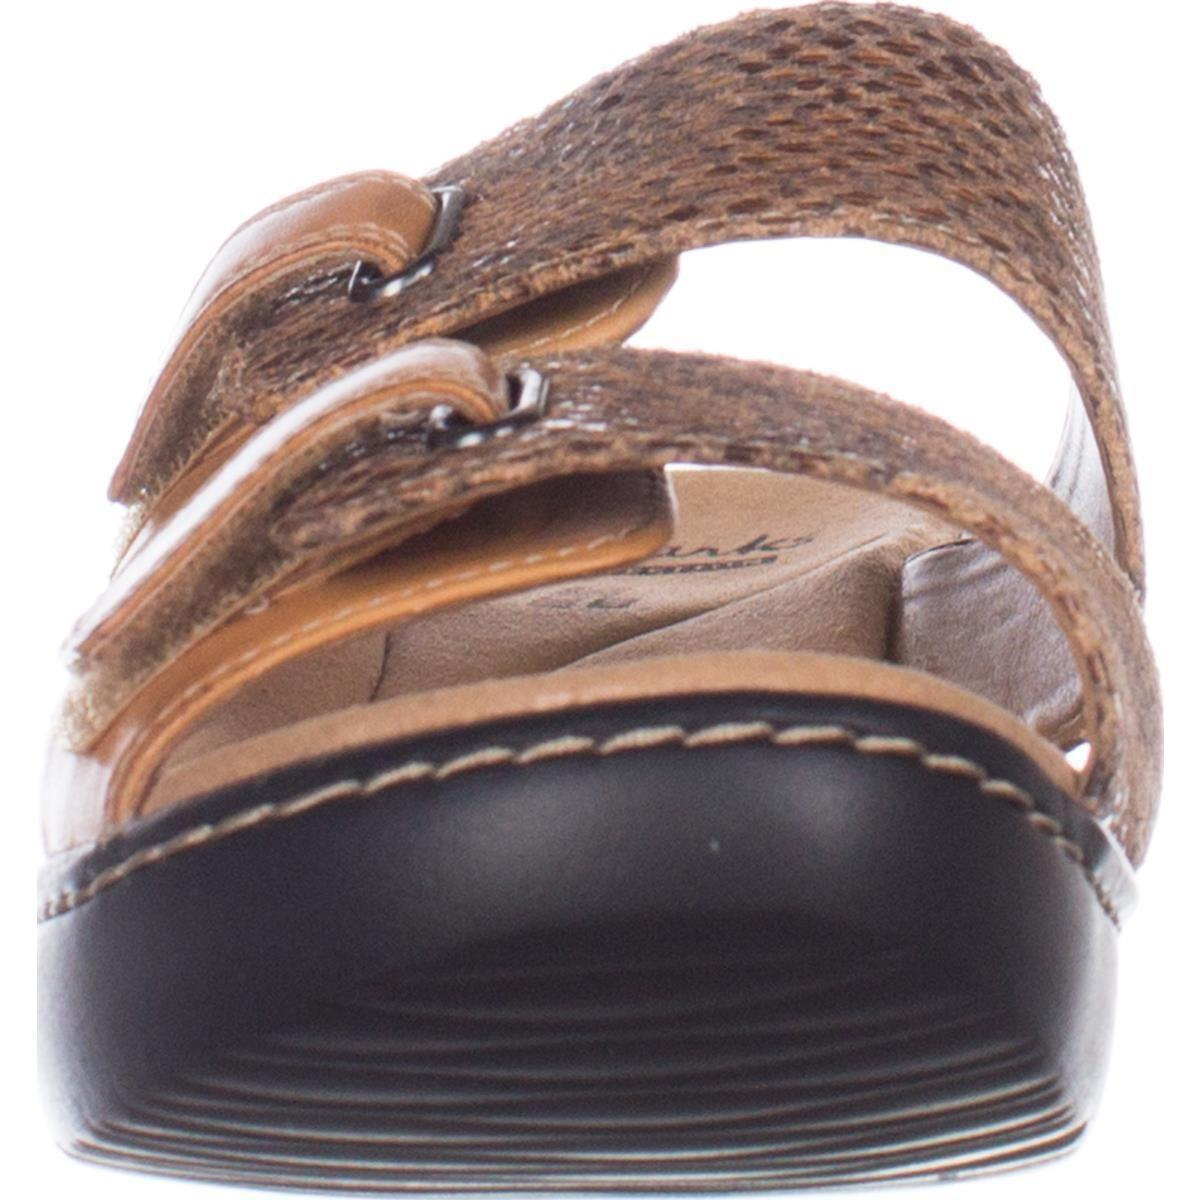 0da4058c8d87 Lyst - Clarks Delana Fenela Comfort Wedge Sandals - Save 24%